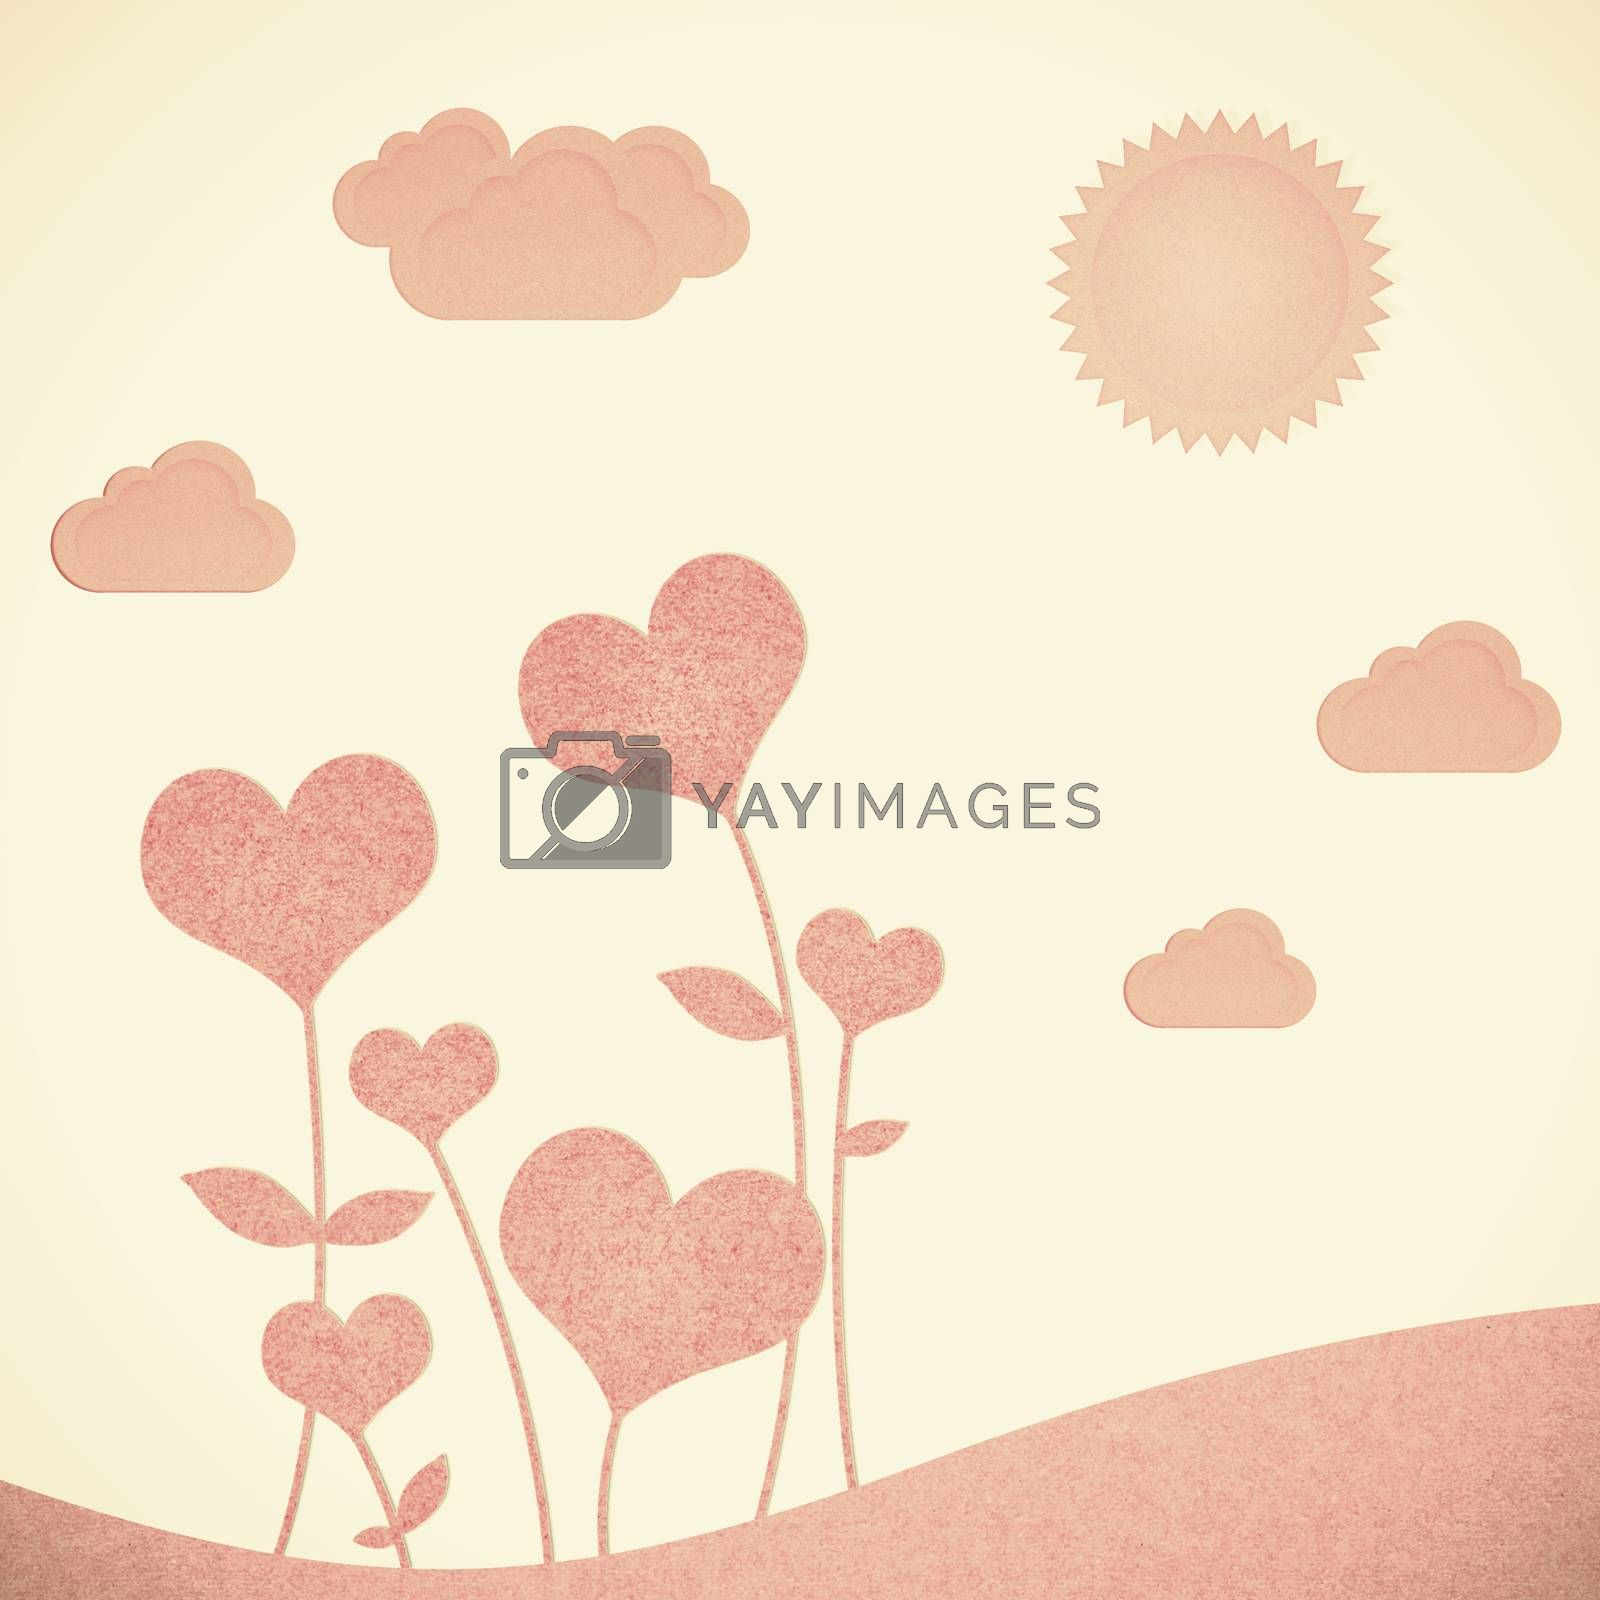 Recycle paper valentine flower background for romance, wedding a by jakgree